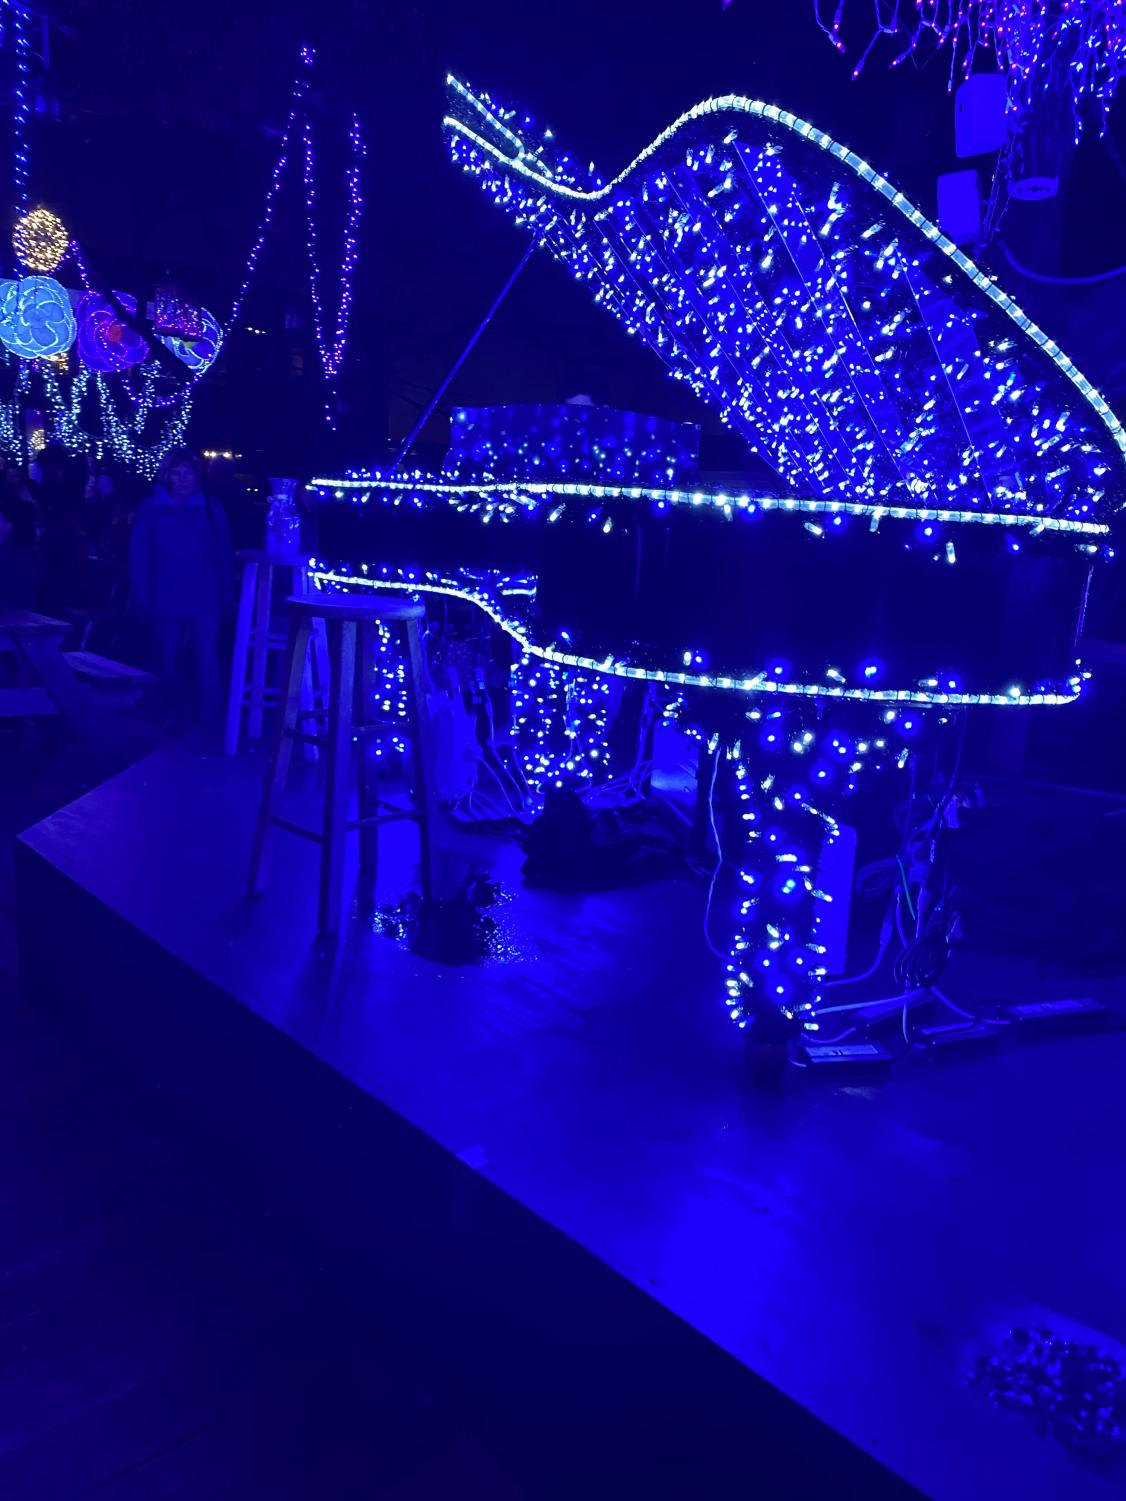 The+grand+piano+is+decked+out+with+sparkling+blue+lights%2C+adding+to+the+grandeur+of+the+live+performances.